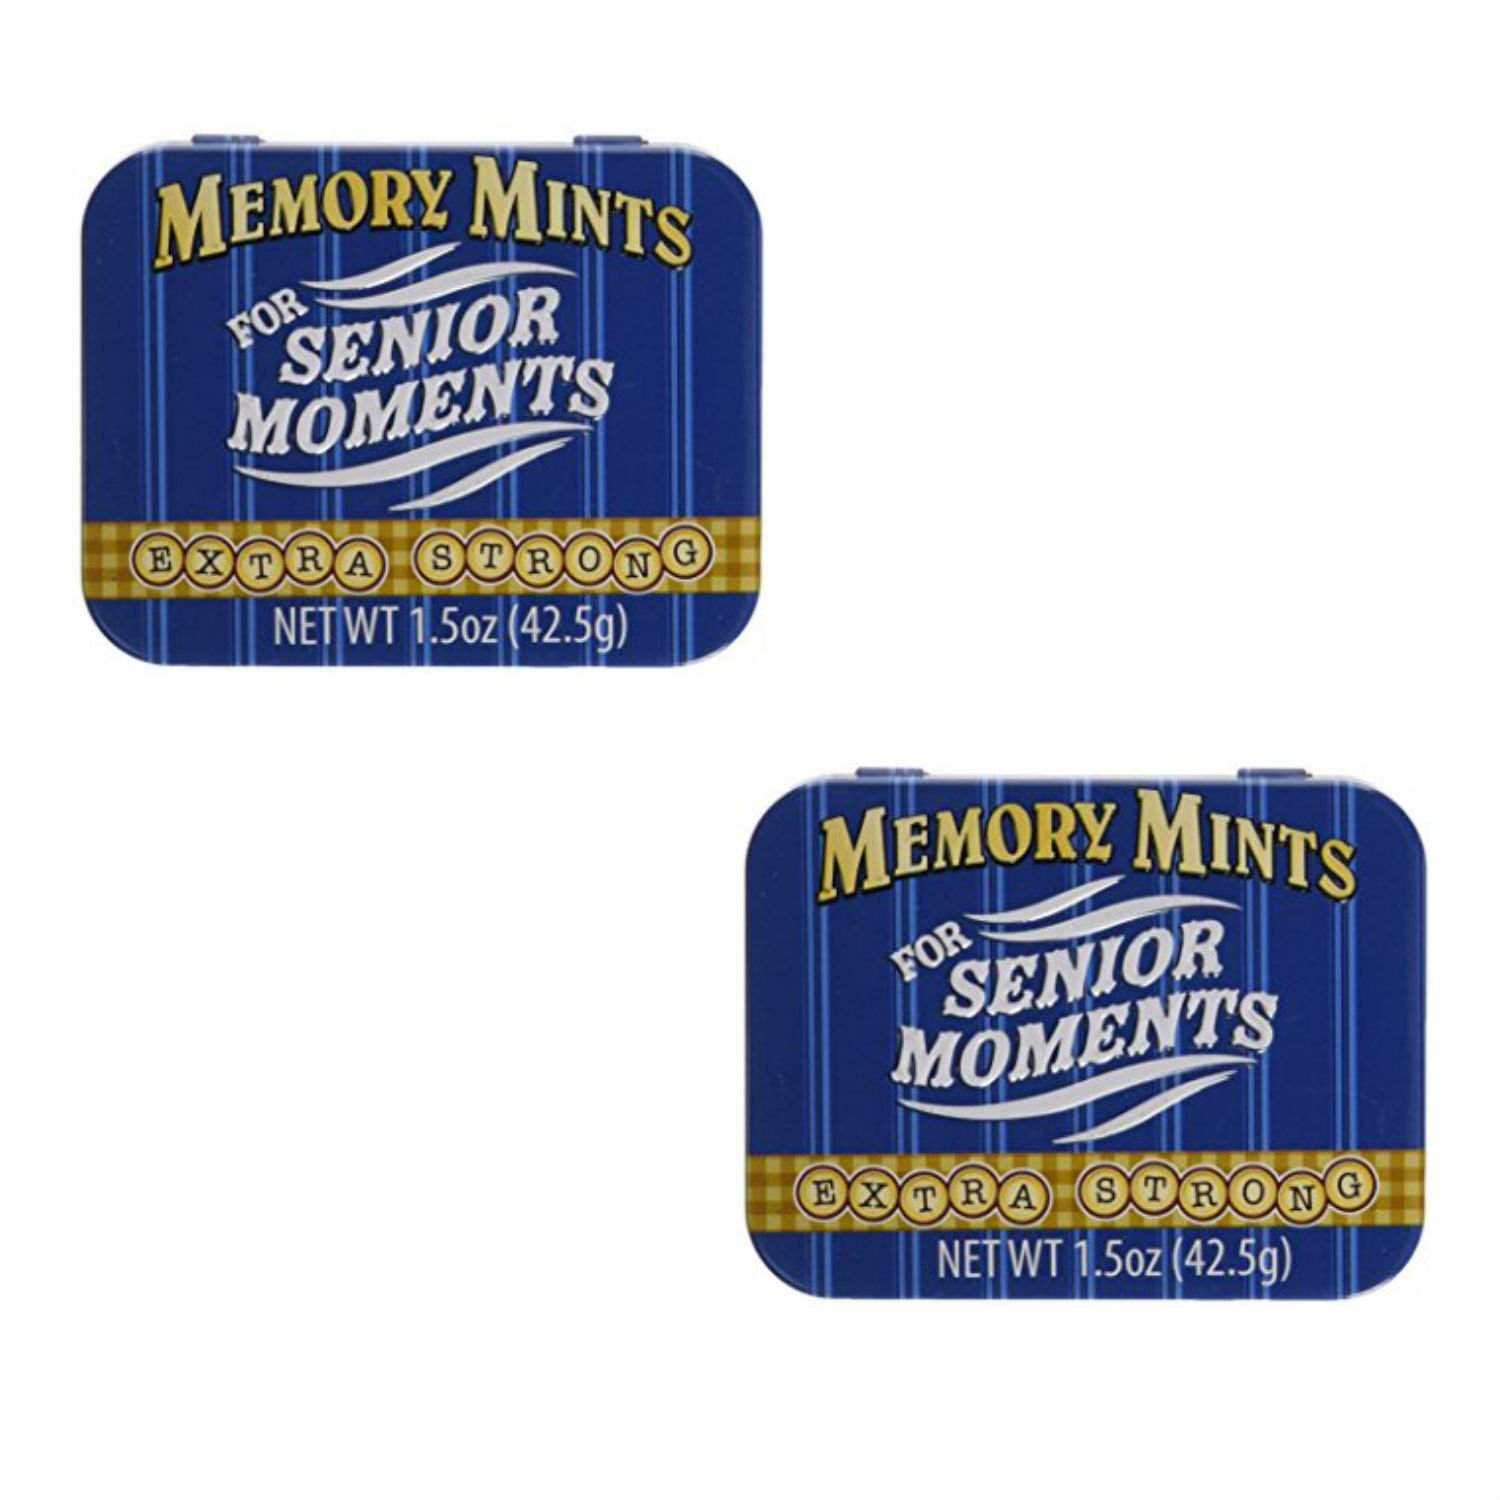 Memory Mints for Senior Moments Fun Gag Tin, Pack of 2 by